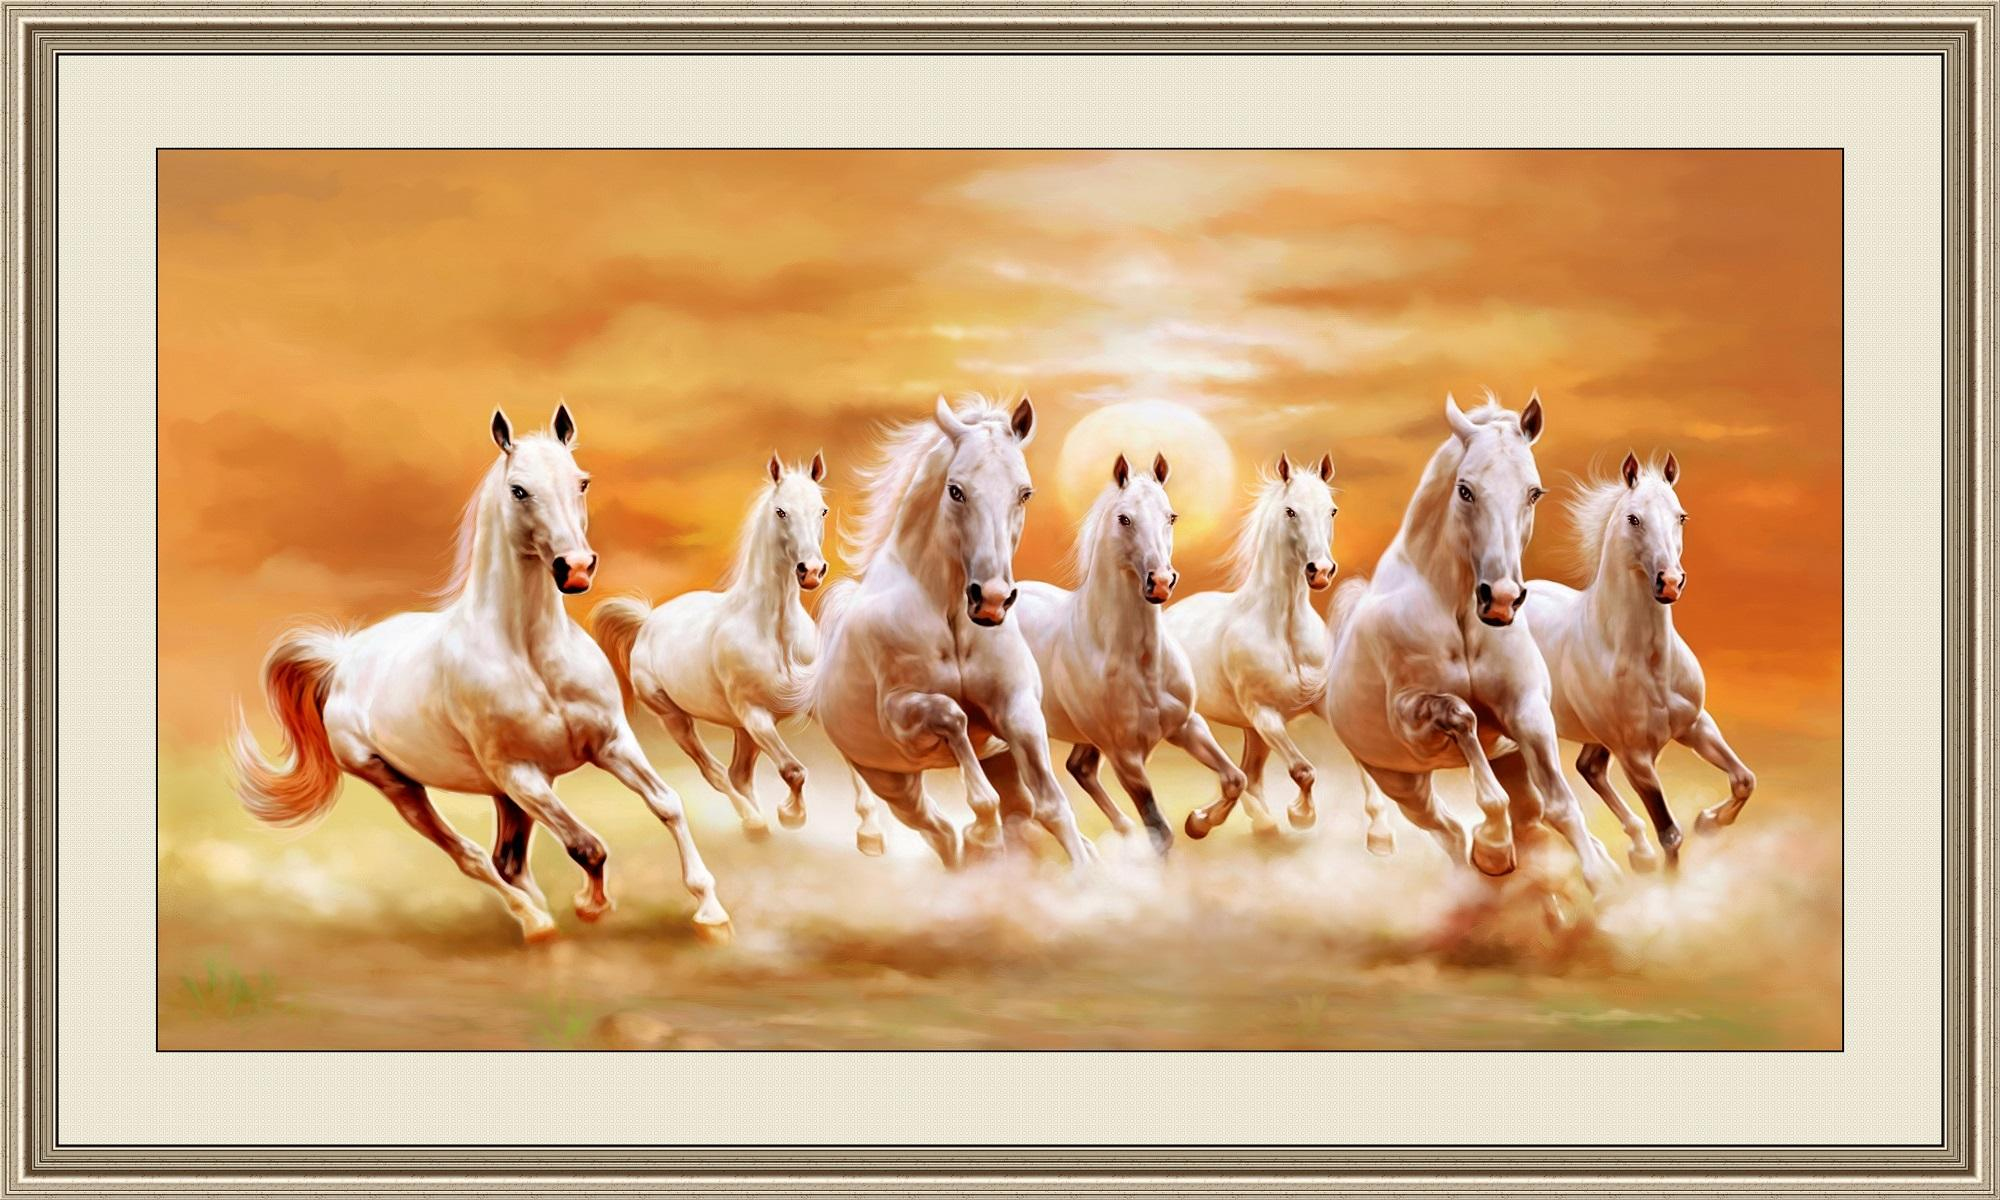 Seven White Horses Wallpaper Running Horse Wallpaper High Resolution 355854 Hd Wallpaper Backgrounds Download